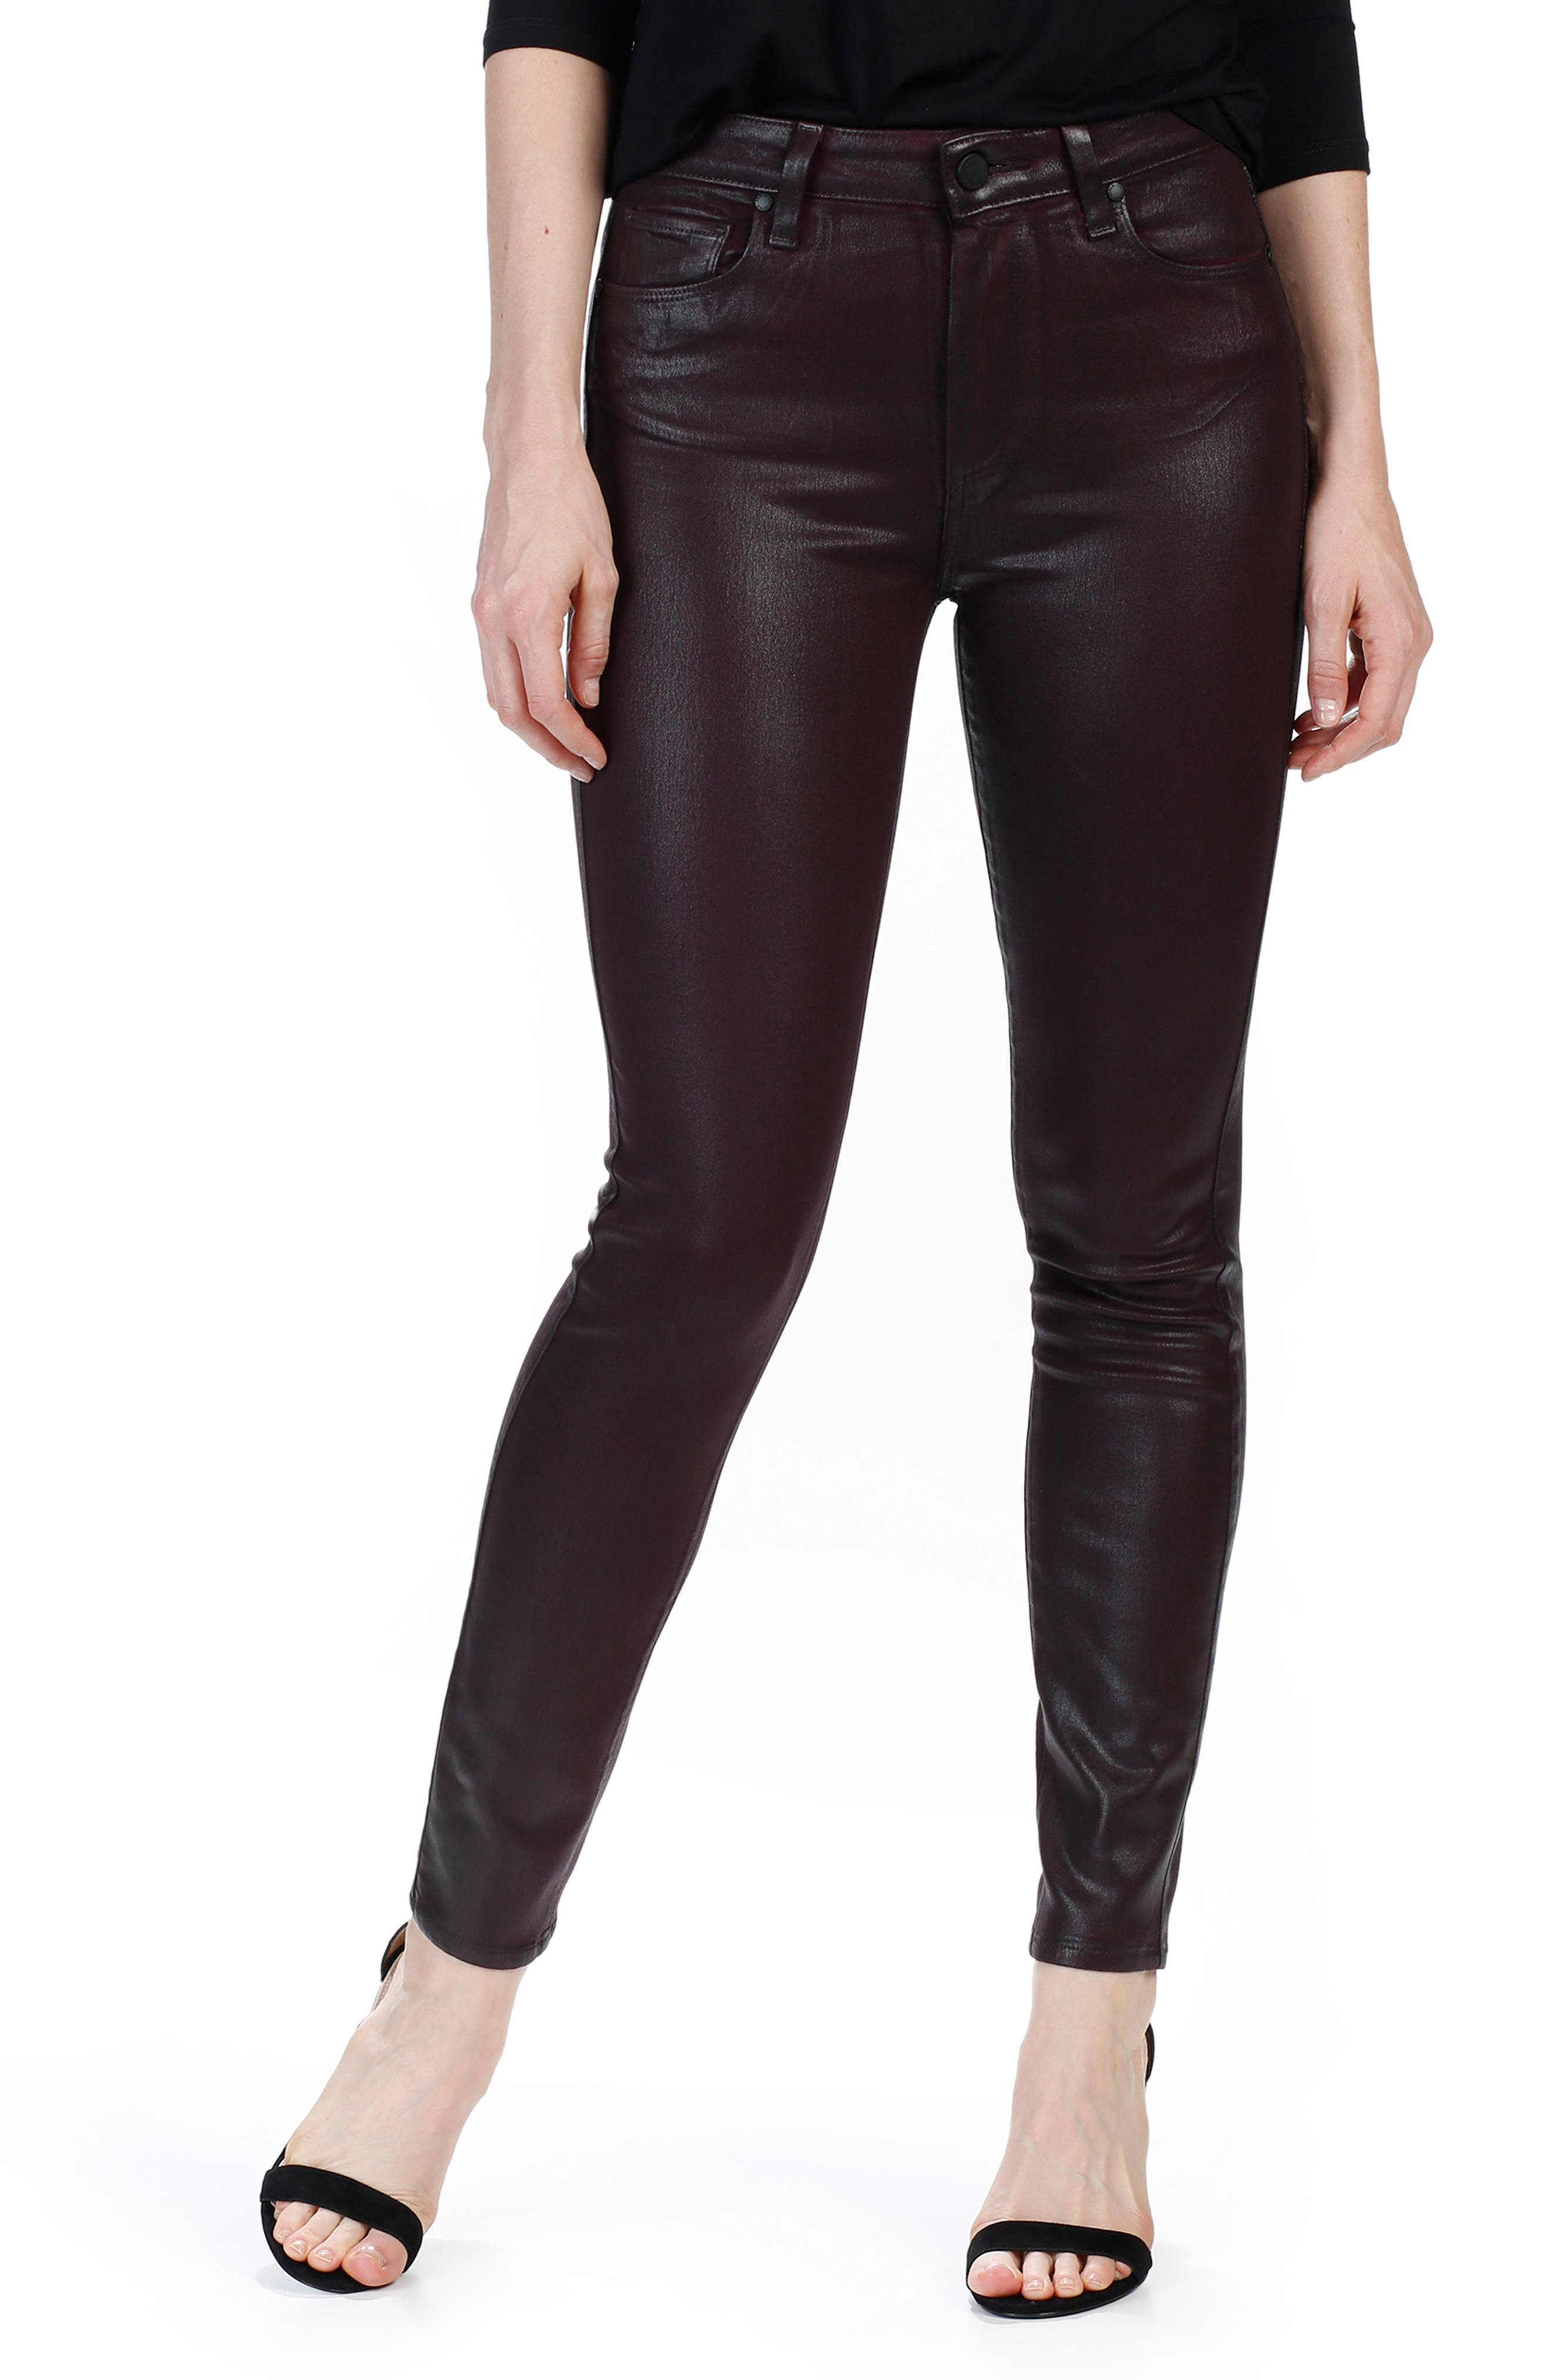 Transcend - Hoxton High Waist Ankle Skinny Jeans,                         Main,                         color, Wine Luxe Coated